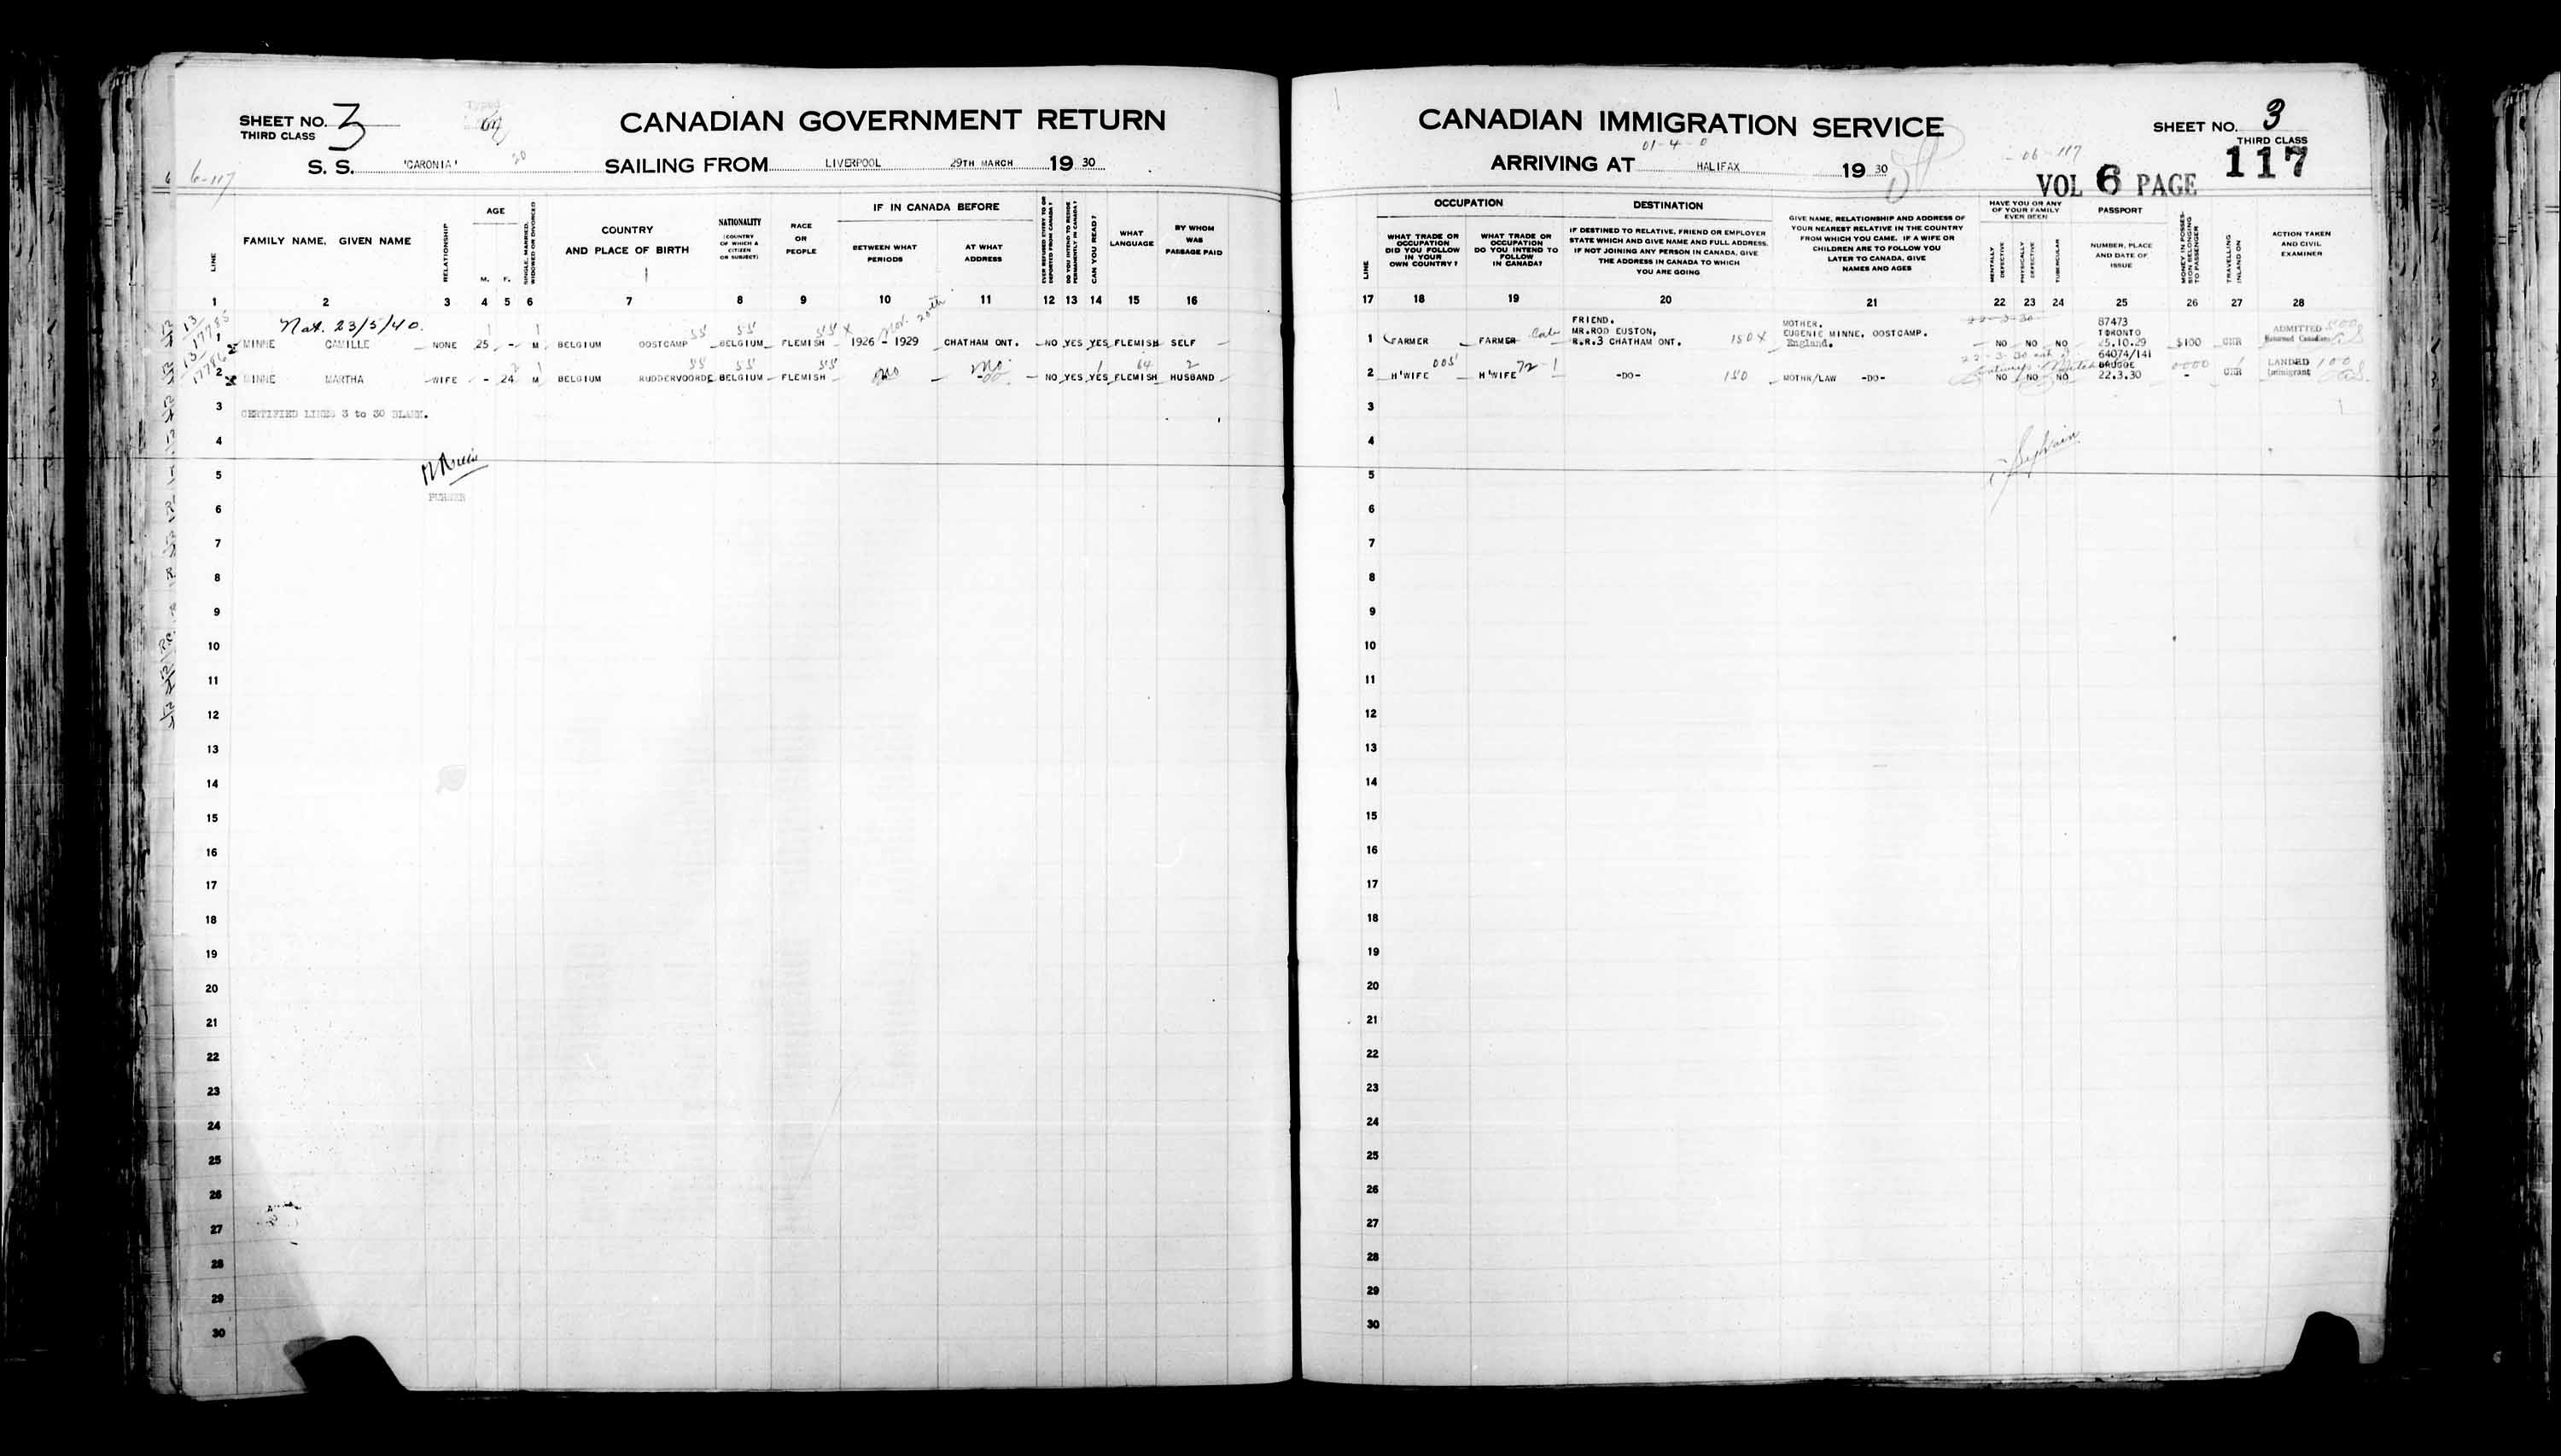 Title: Passenger Lists: Halifax (1925-1935) - Mikan Number: 134853 - Microform: t-14825